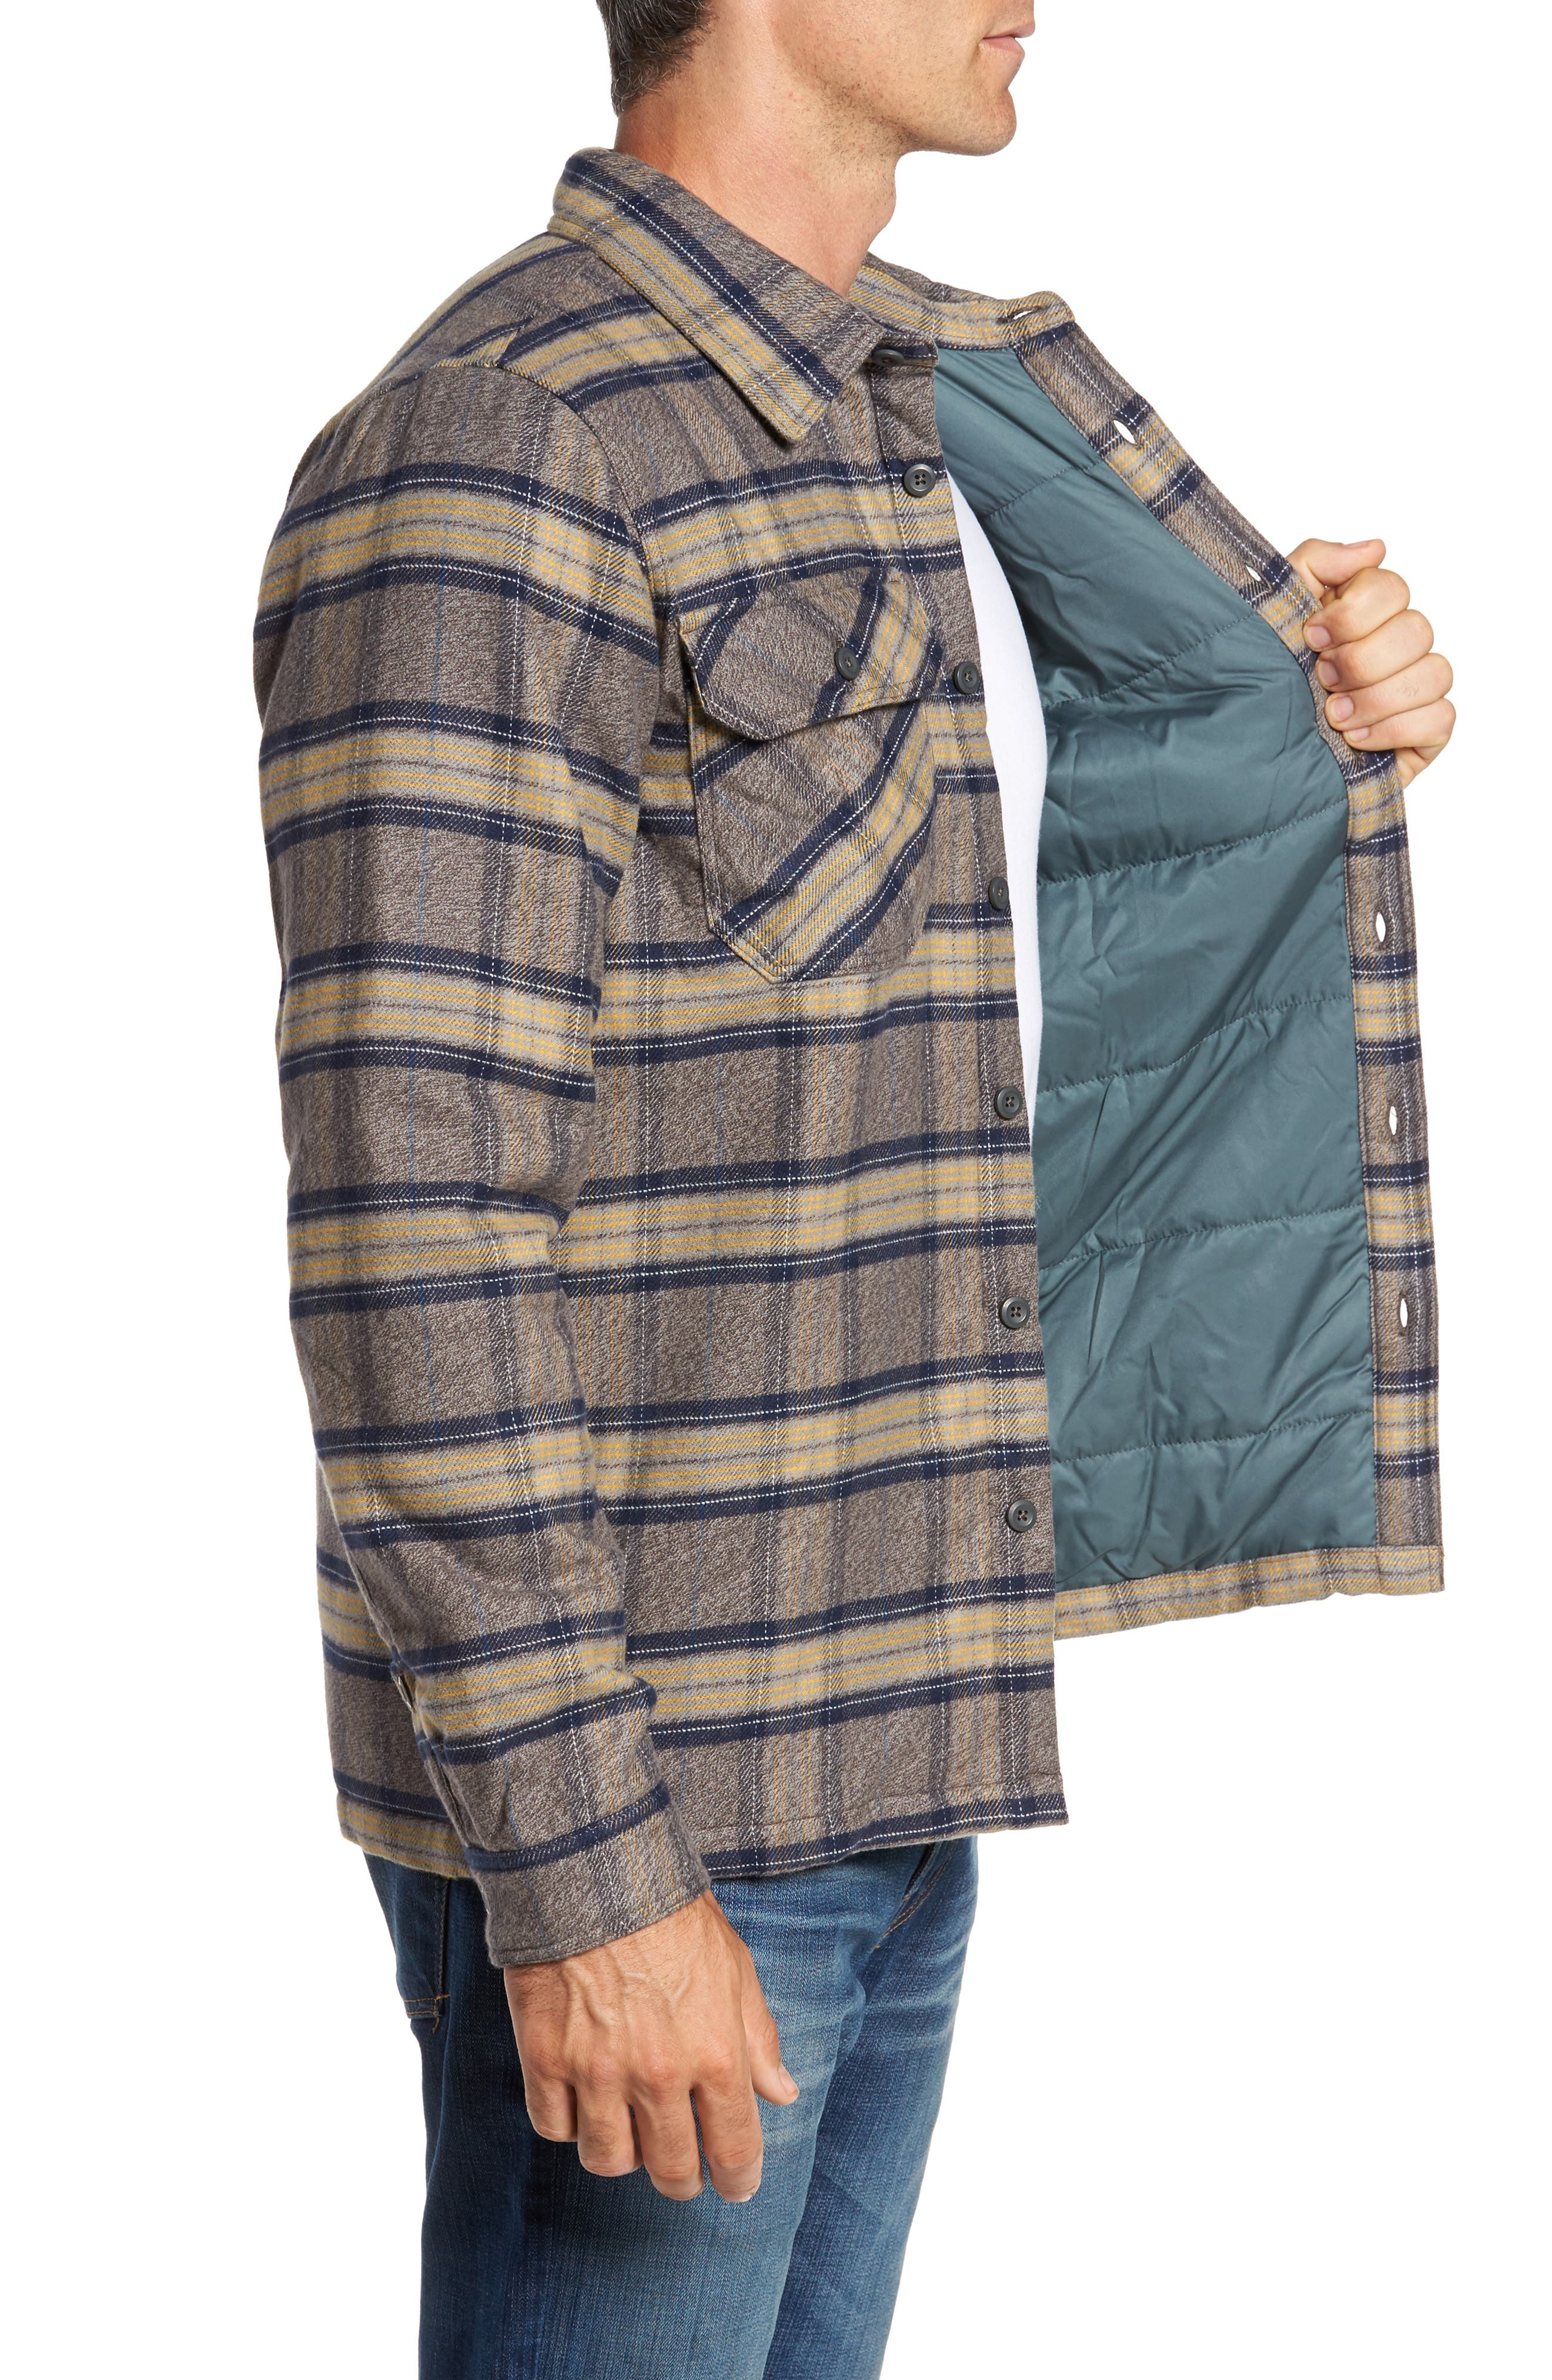 'Fjord' Flannel Shirt Jacket,                             Alternate thumbnail 3, color,                             Migration Plaid Forge Grey